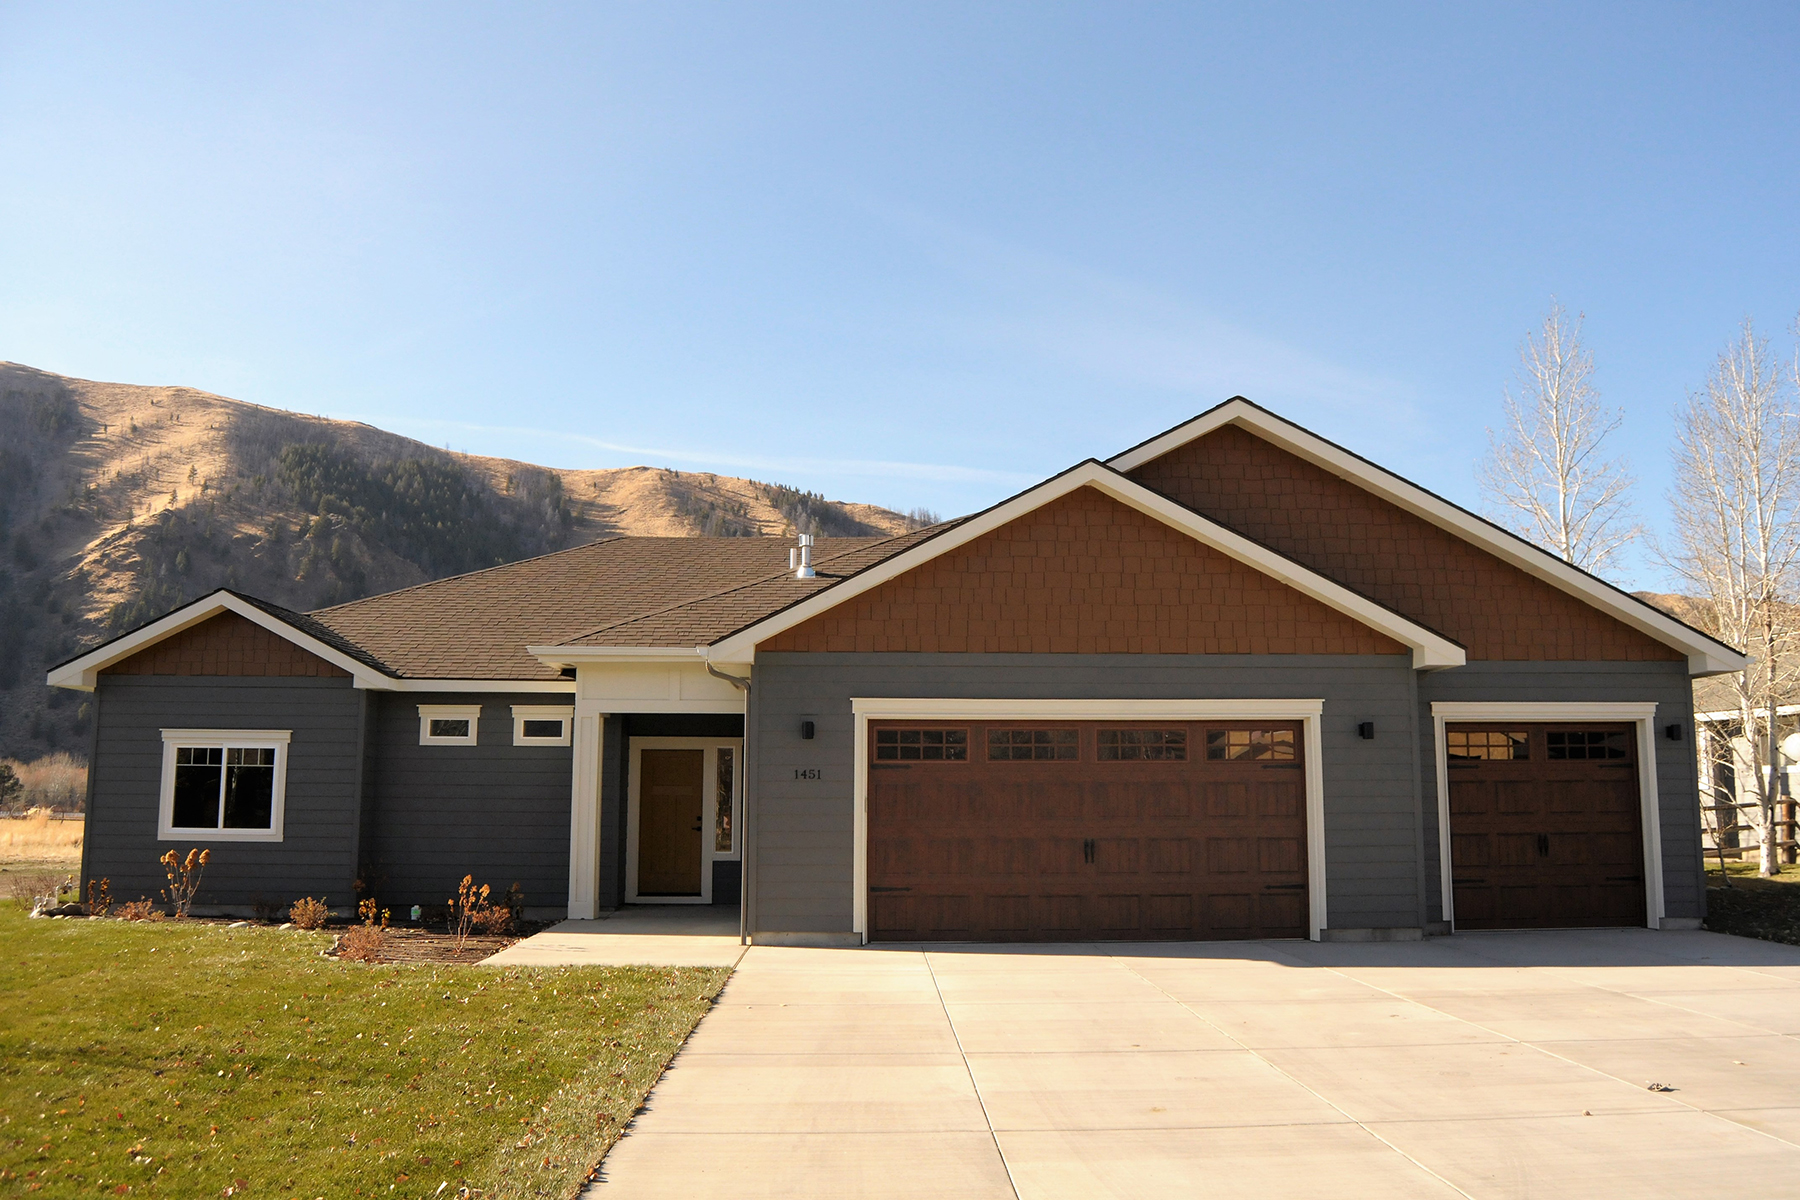 Single Family Home for Active at New Construction Located In Northridge Subdivision 1451 N 2nd Ave Hailey, Idaho 83333 United States